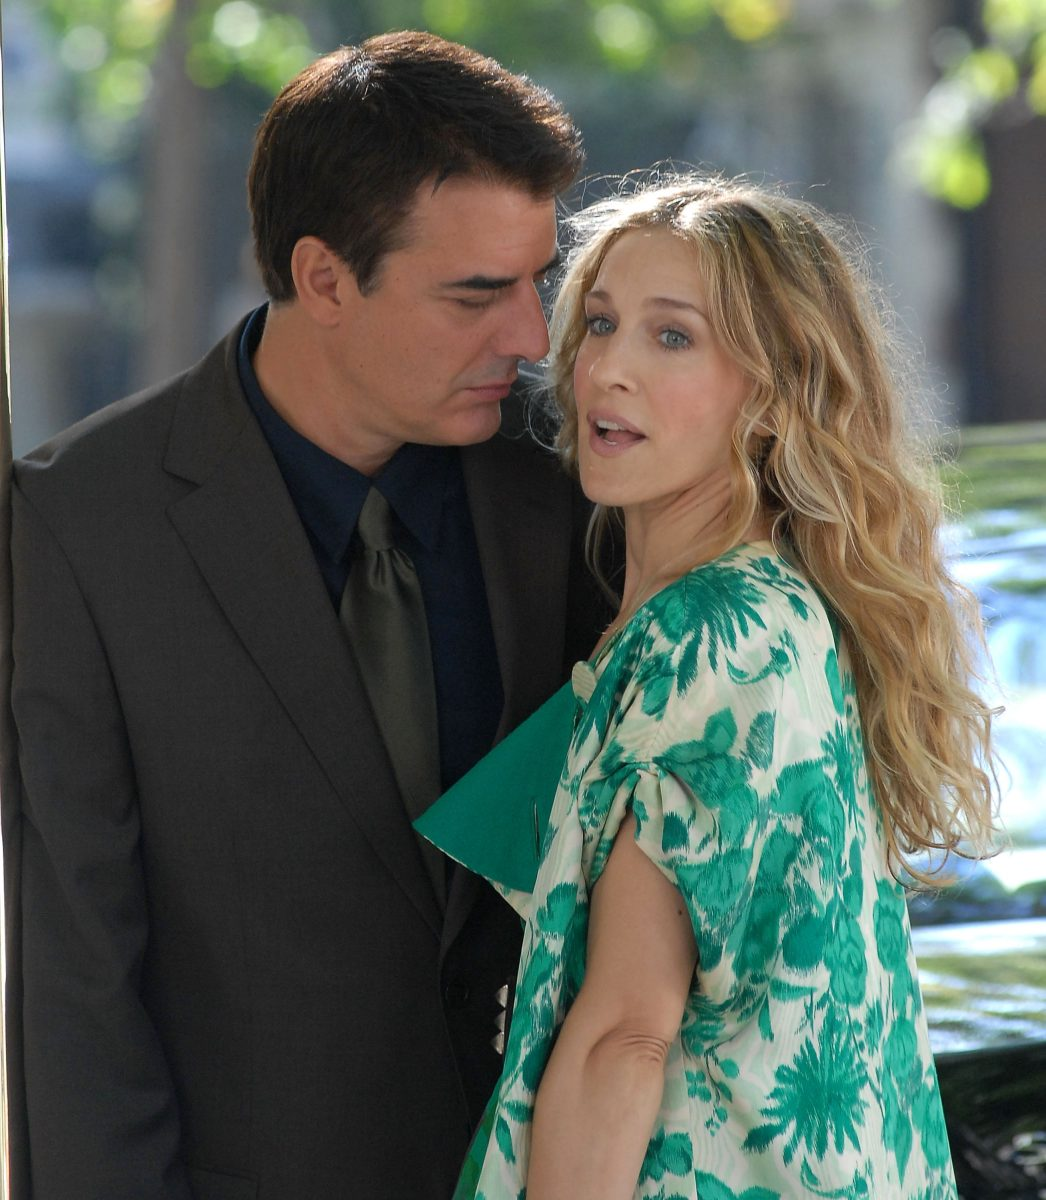 Chris Noth and Sarah Jessica Parker in 'Sex and the City: The Movie'